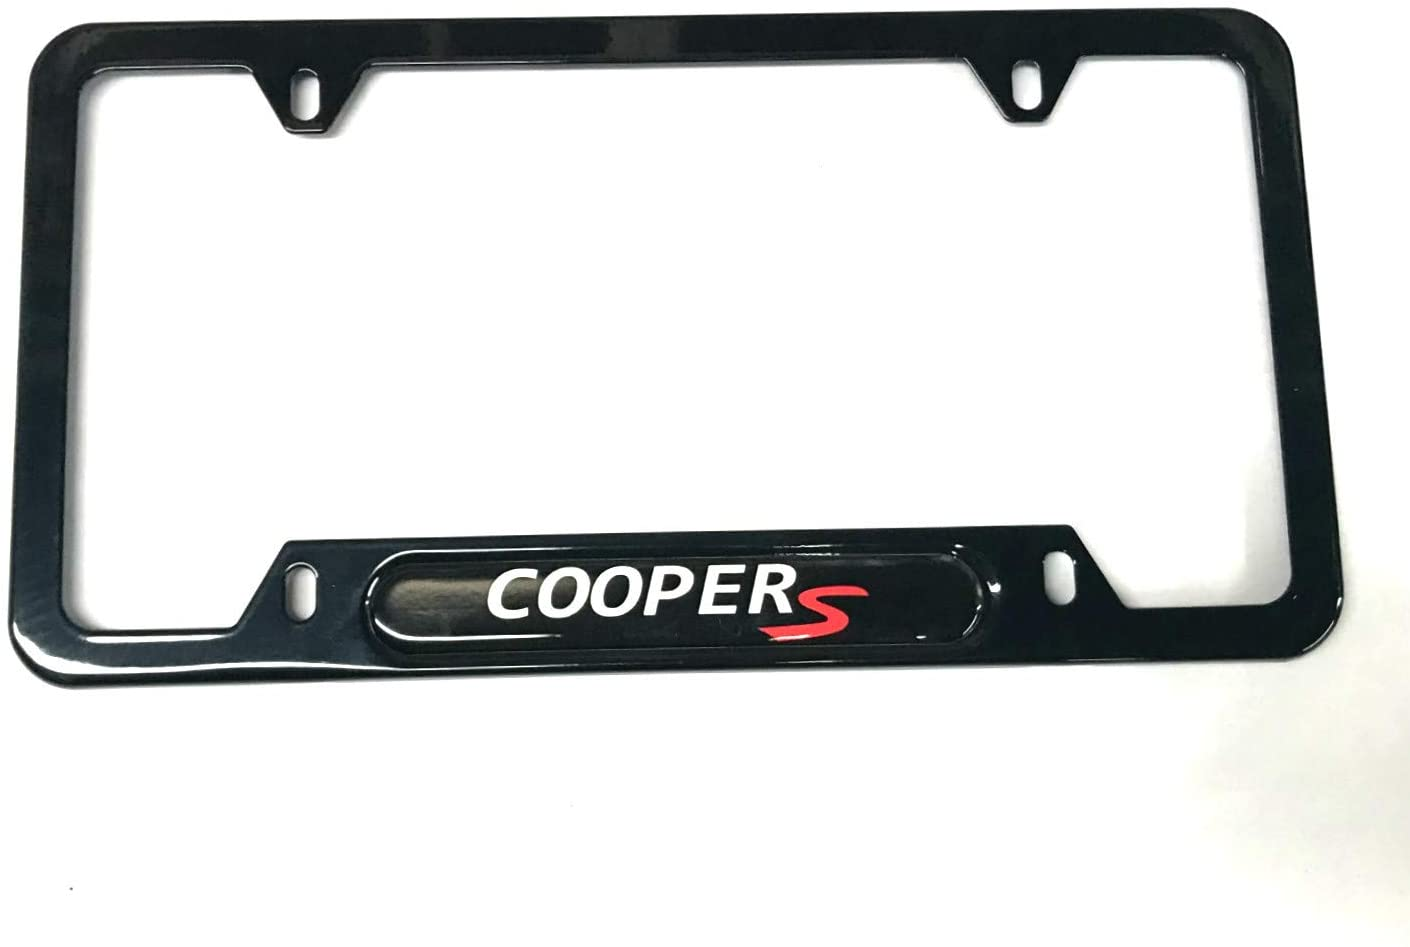 Auteal Car Stainless Steel Metal Coopers License Plate Tag Frame Cover Holders w/Caps Screws for Mini (1 Black)